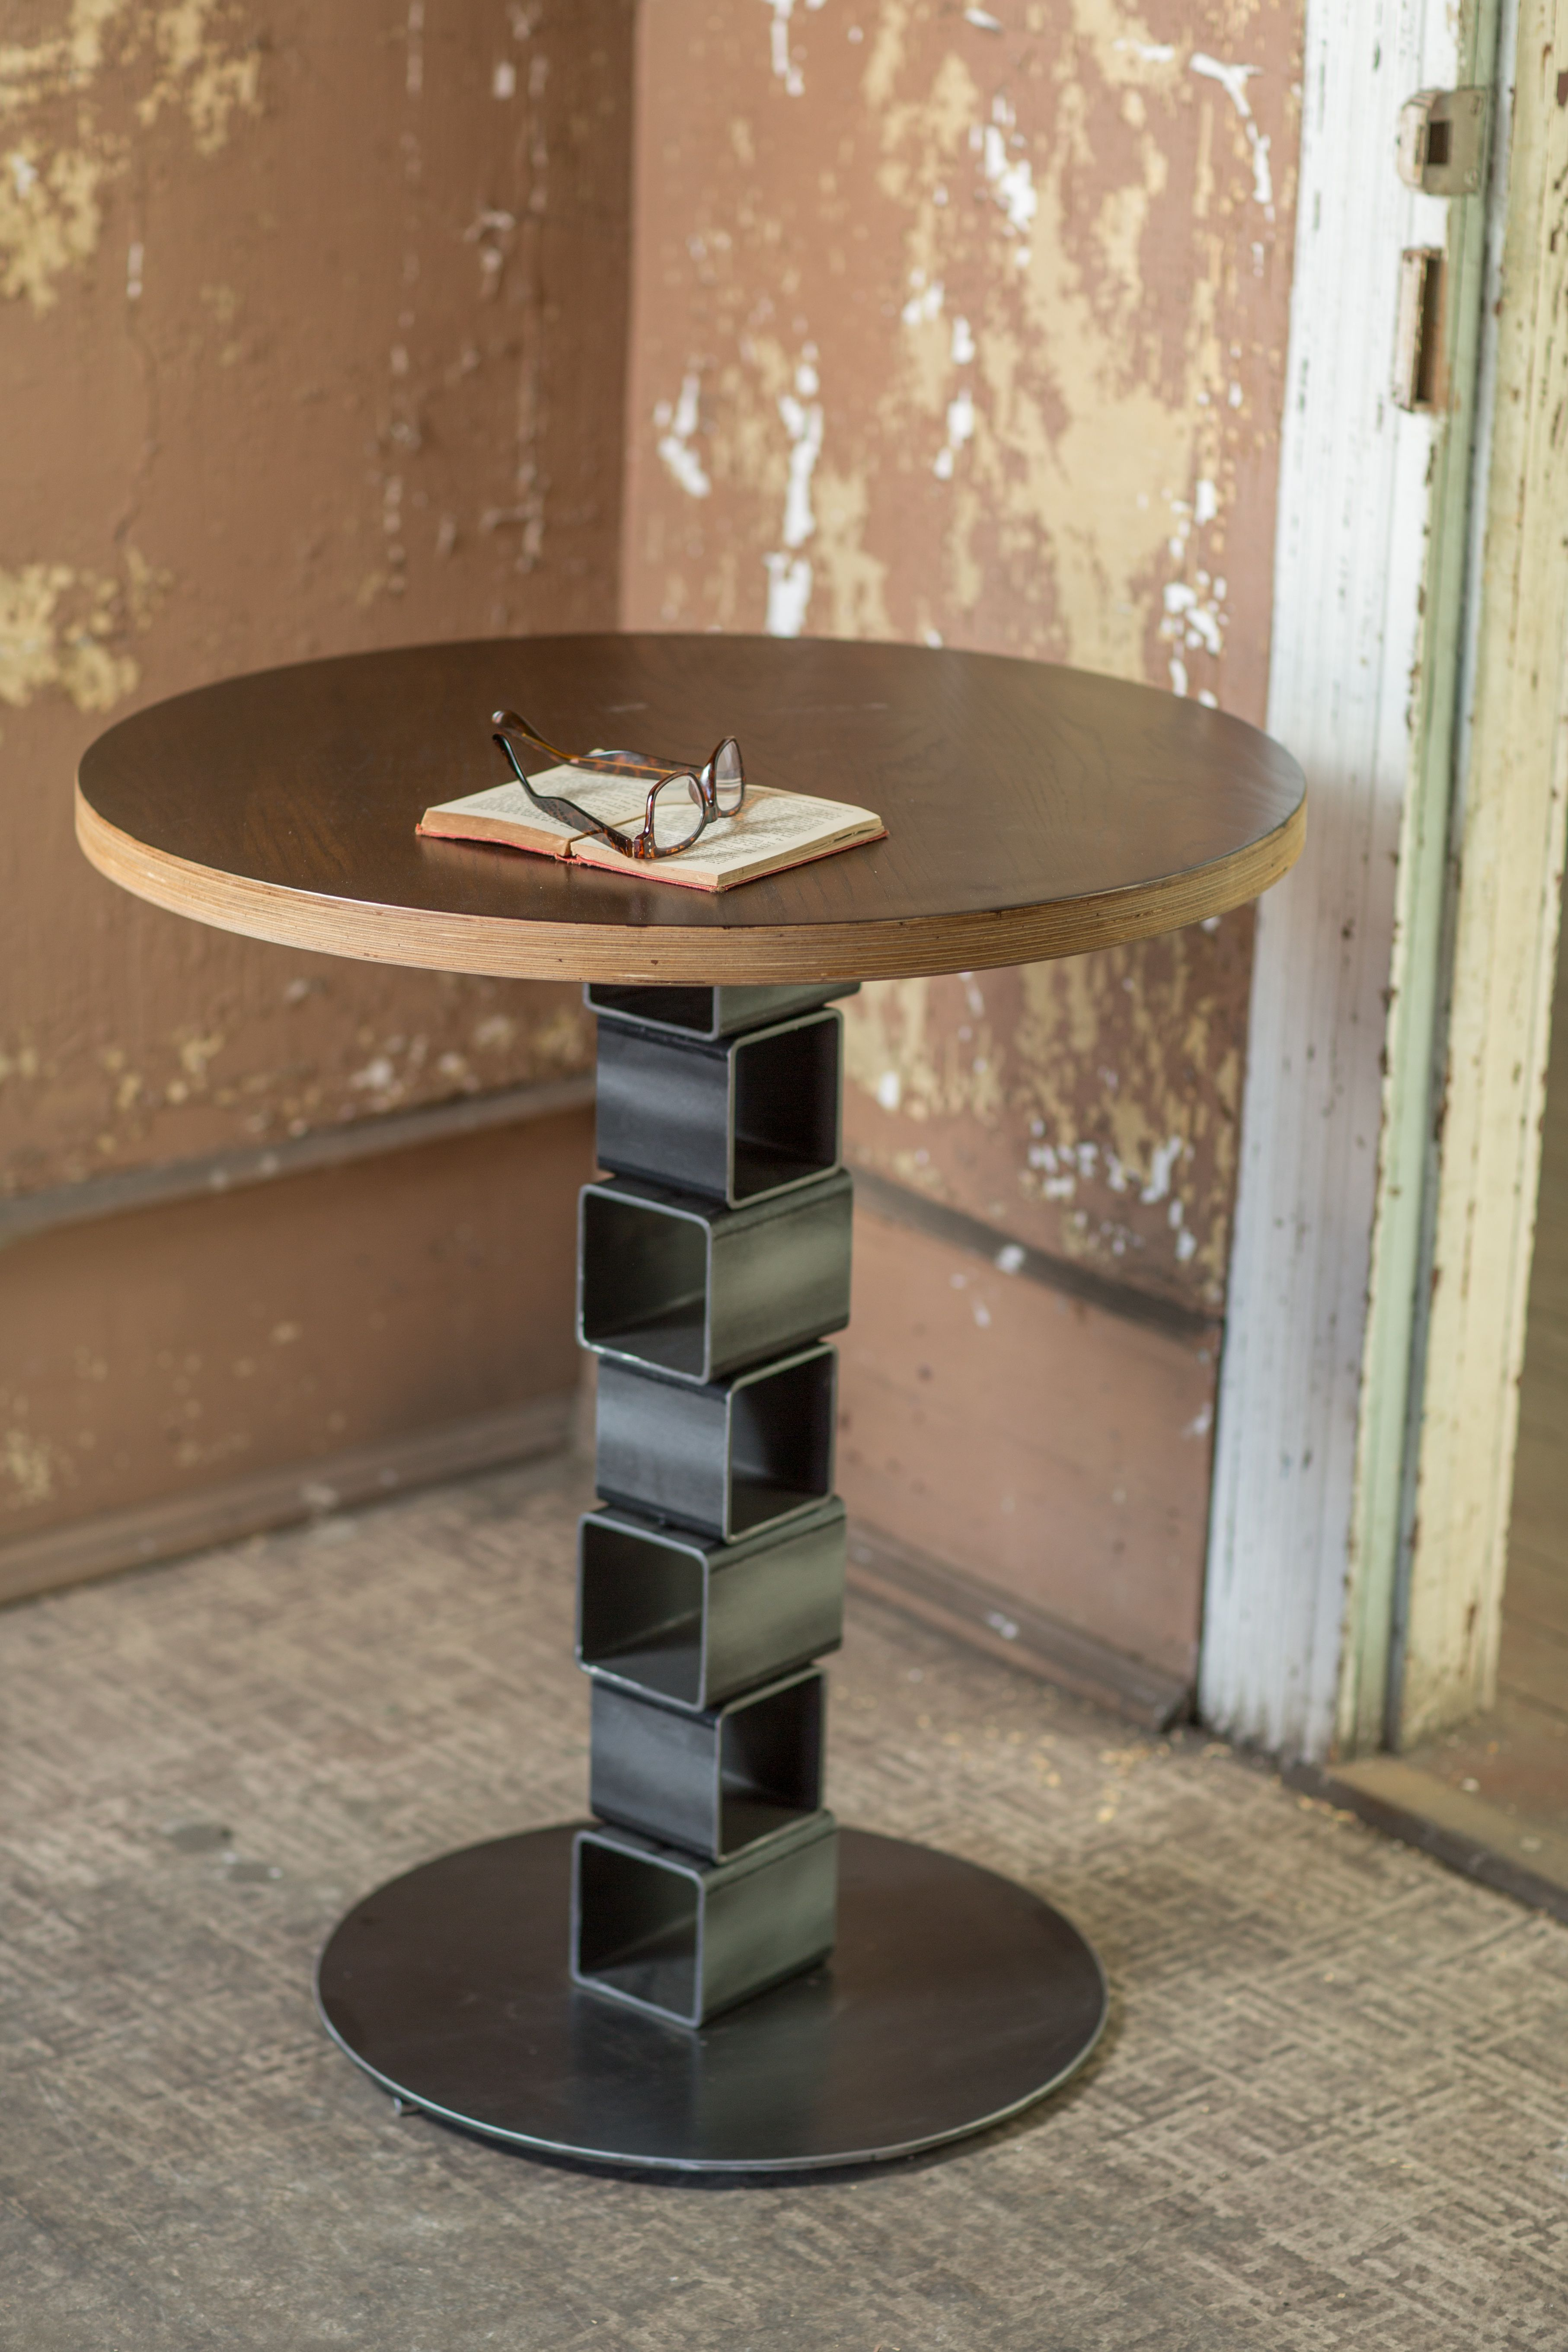 Round Wooden Table With Steel Base This Custom Handmade Table Is Great For The Dining Room Office Wo Metal Furniture Design Metal Furniture Steel Furniture